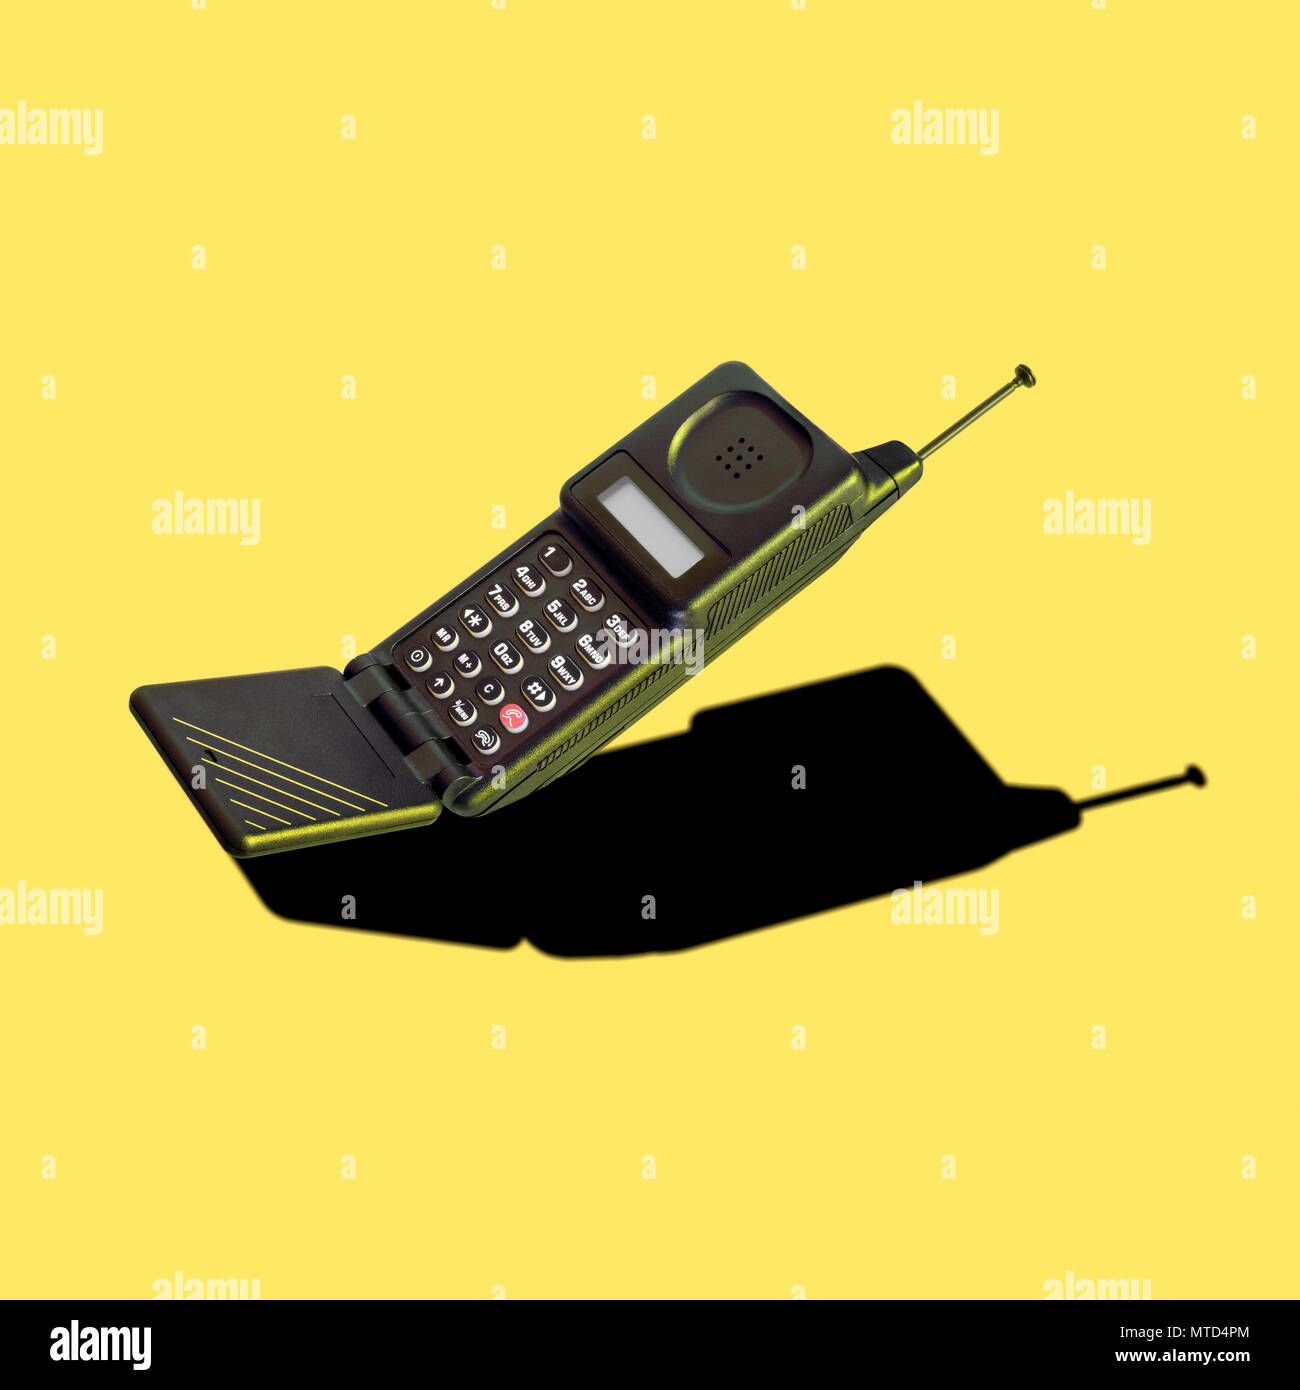 Vintage analog cellular phone with flip mouthpiece, dummy aerial and LED display; it was innovative and trendsetting, and its features were developed  - Stock Image